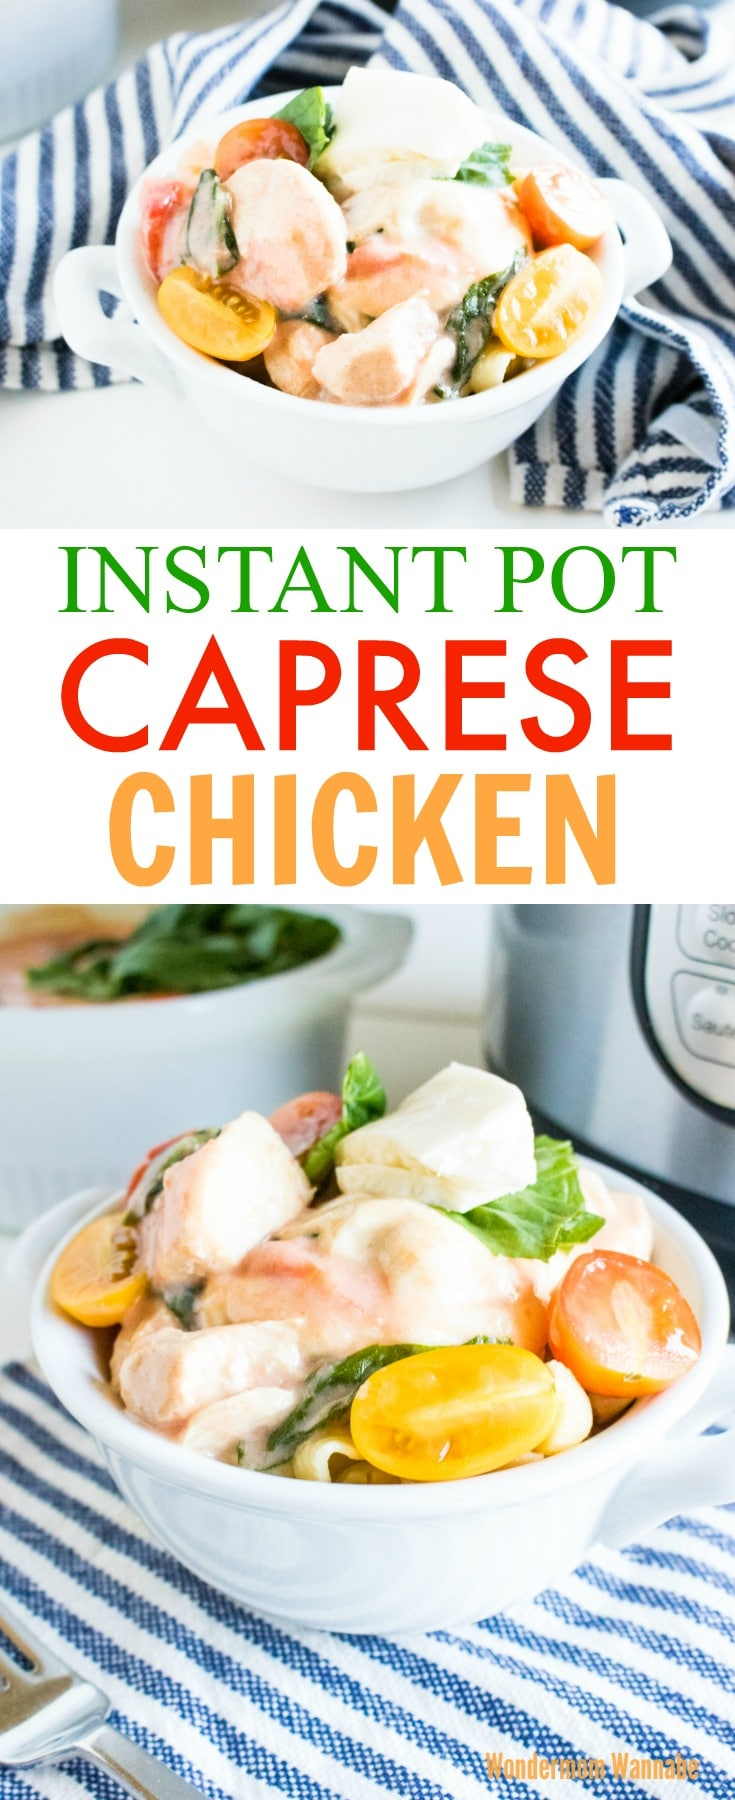 Instant Pot Caprese Chicken